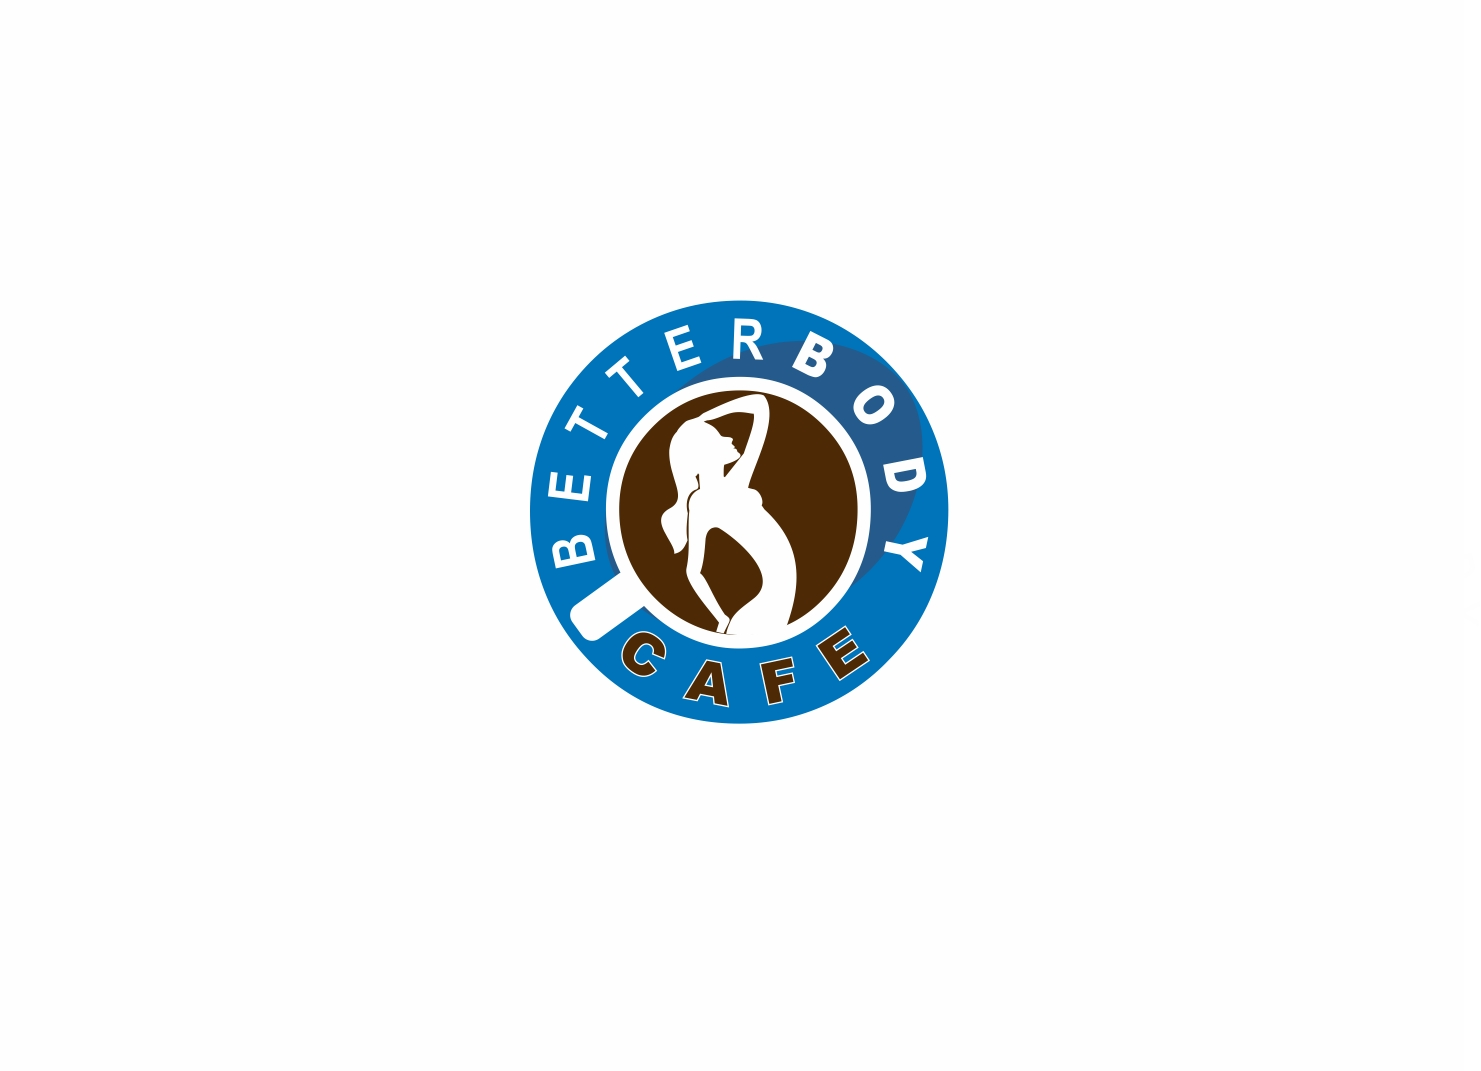 Logo Design by Zdravko Krulj - Entry No. 70 in the Logo Design Contest New Logo Design for Better Body Cafe.